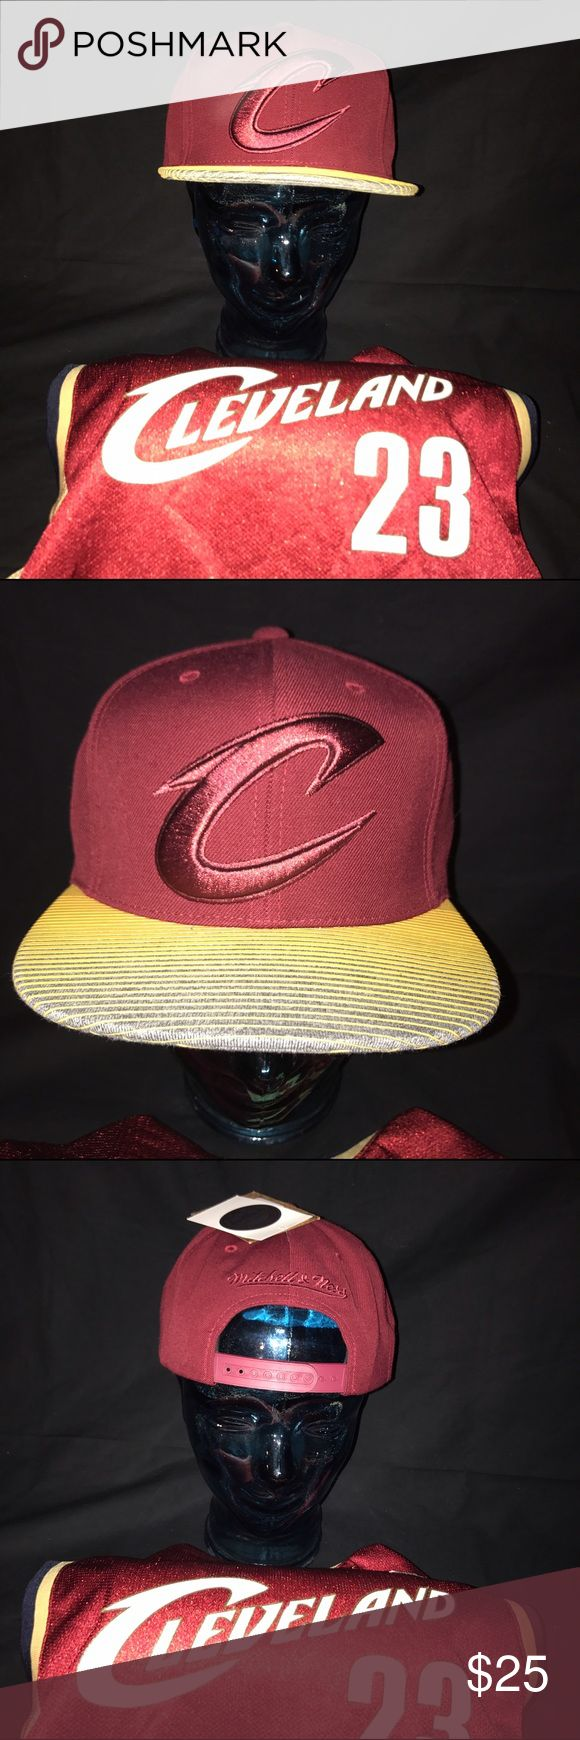 NWT Mitchell and Ness Cleveland Cavaliers SnapBack Brand new, Mitchell and Ness Cleveland Cavaliers SnapBack. MINT condition. Never worn. Retail is $32. Buy any 2 Hats and I will take an extra $6 off the total price. Mitchell & Ness Accessories Hats